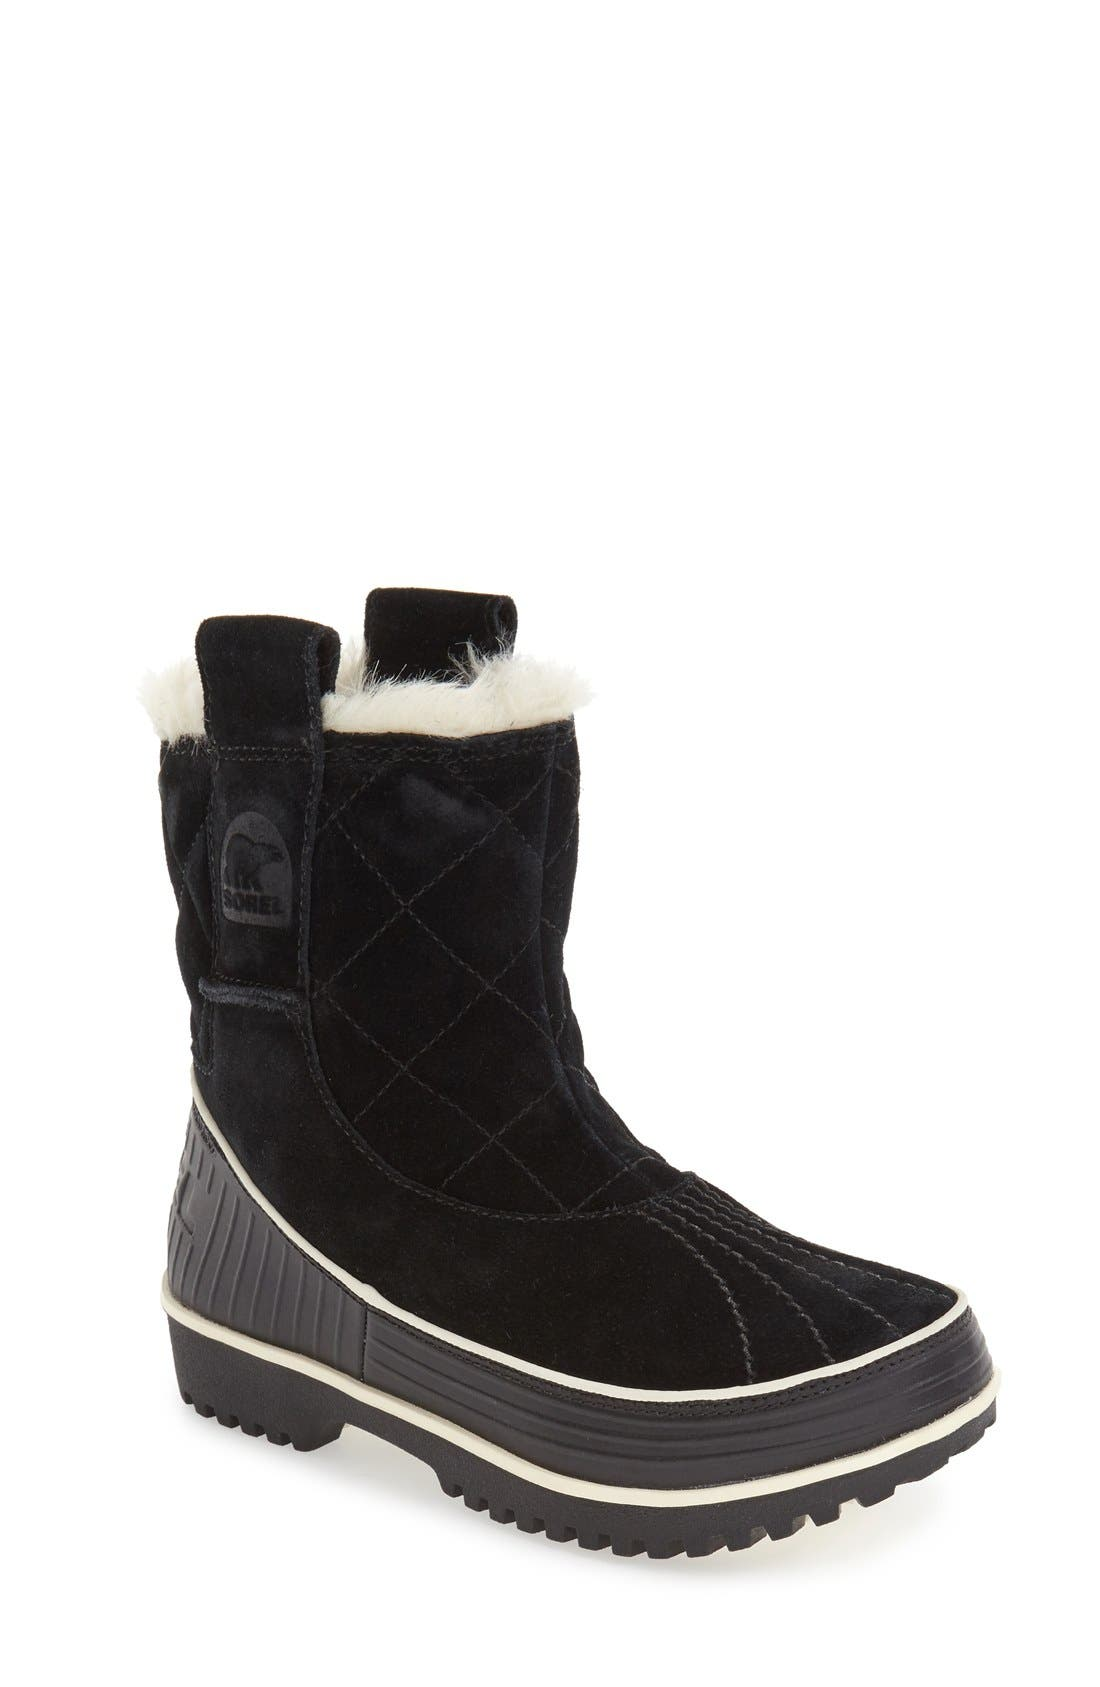 SOREL 'Tivoli II' Waterproof Snow Boot (Women)